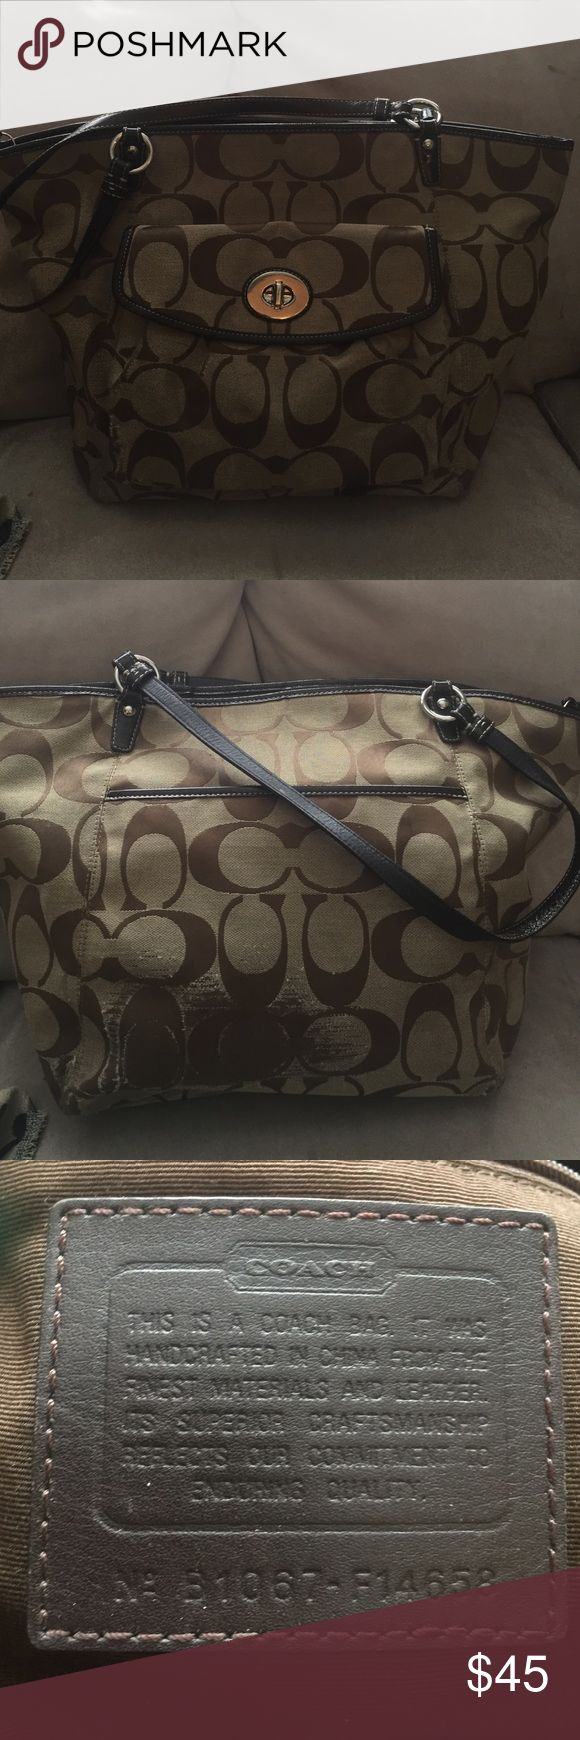 Coach tote bag Large Coach tote bag. This bag was welled loved and is worn in several places. Still has lots of life! Coach Bags Totes